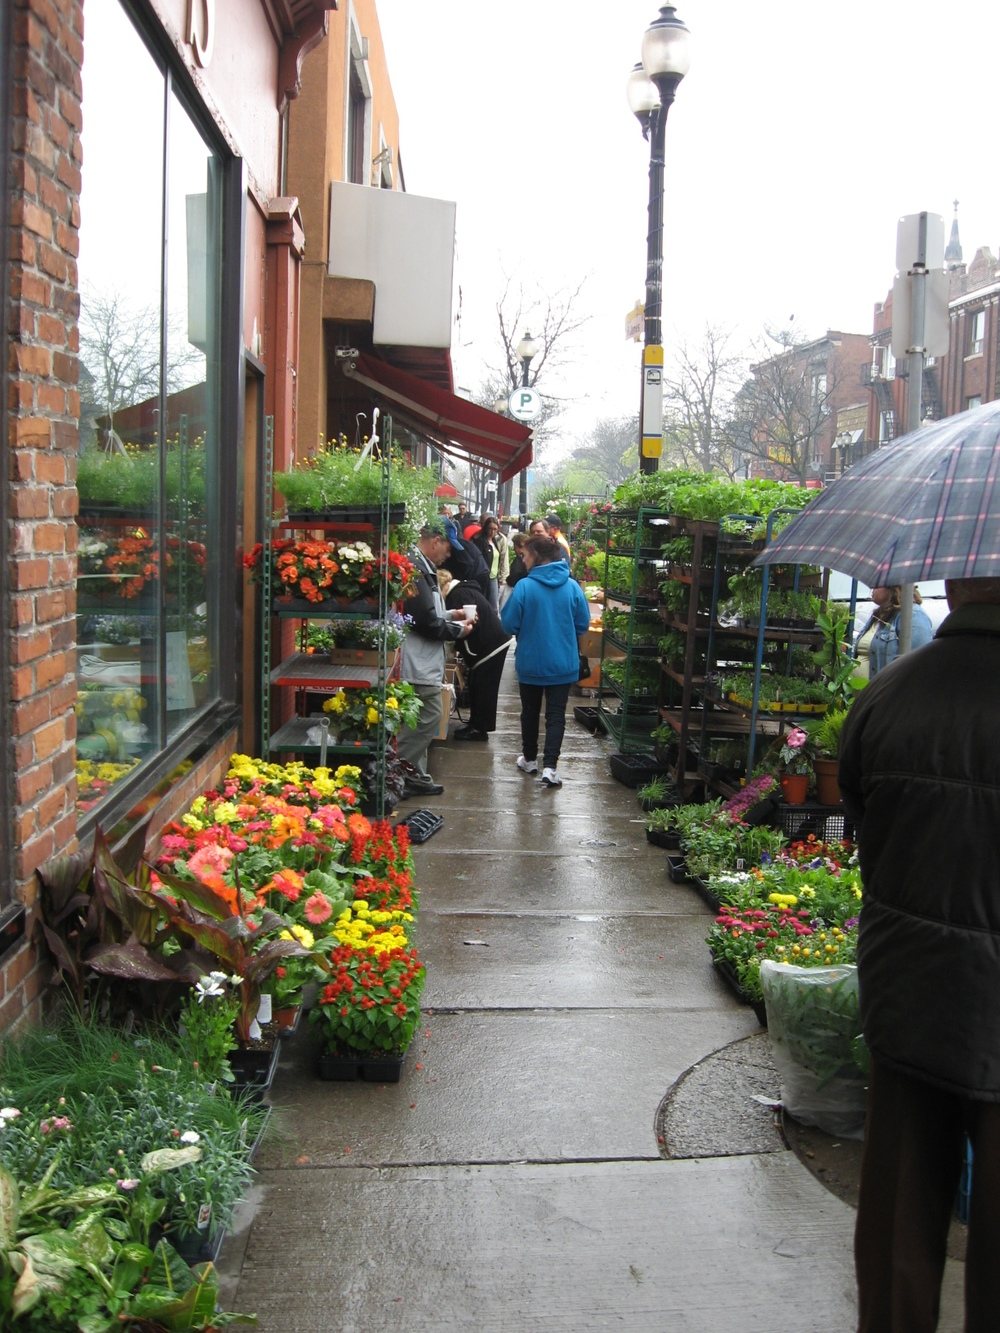 This could be in Portugal, but it is downtown Hamilton's James Street North.  This is just blocks away from Hamilton's downtown Farmers' Market one of the largest and oldest in Canada.